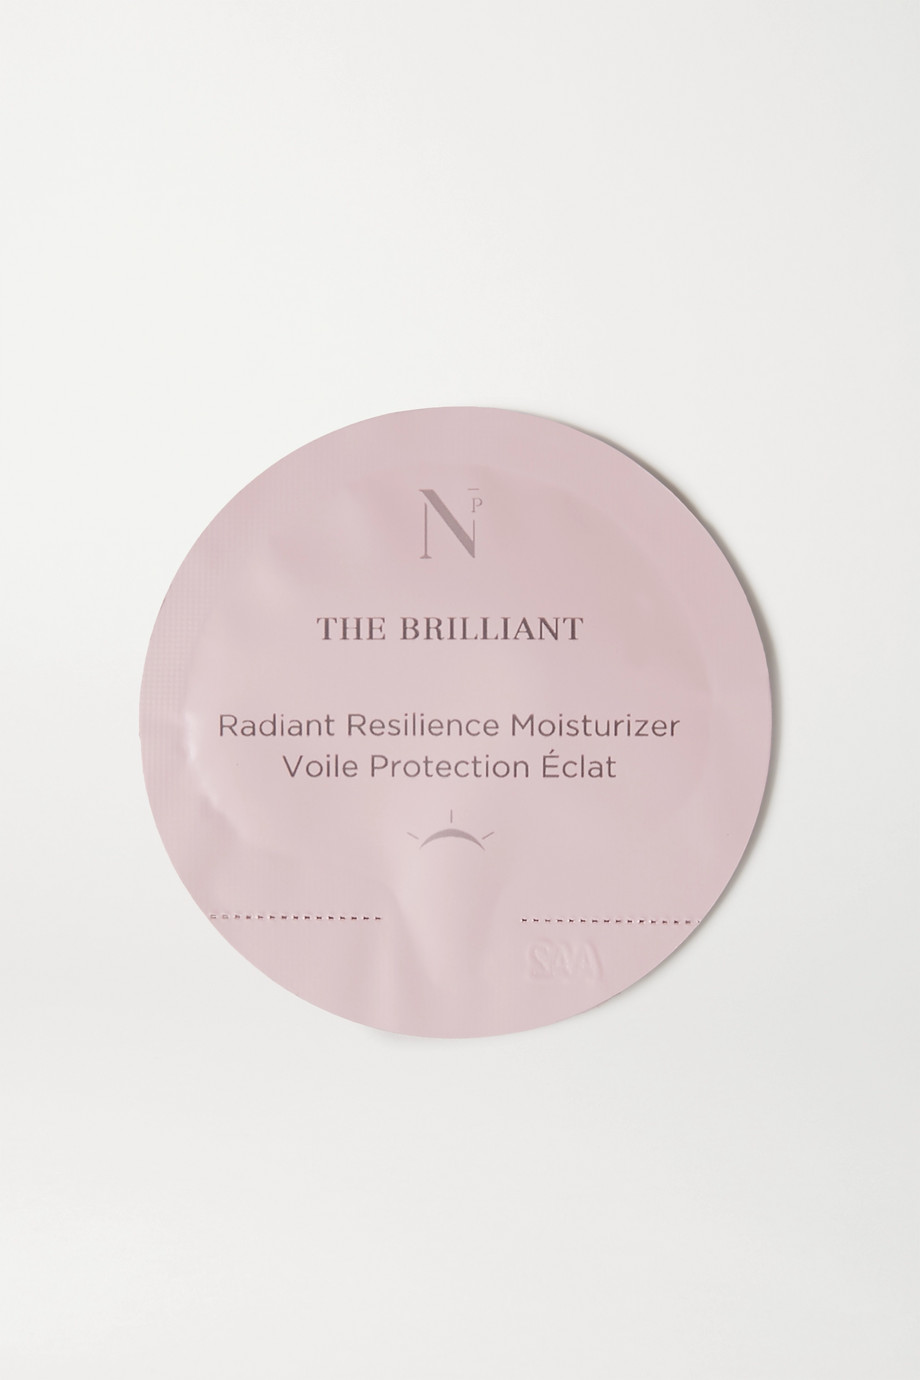 Noble Panacea The Brilliant Radiant Resilience Moisturizer, 30 x 0.8ml